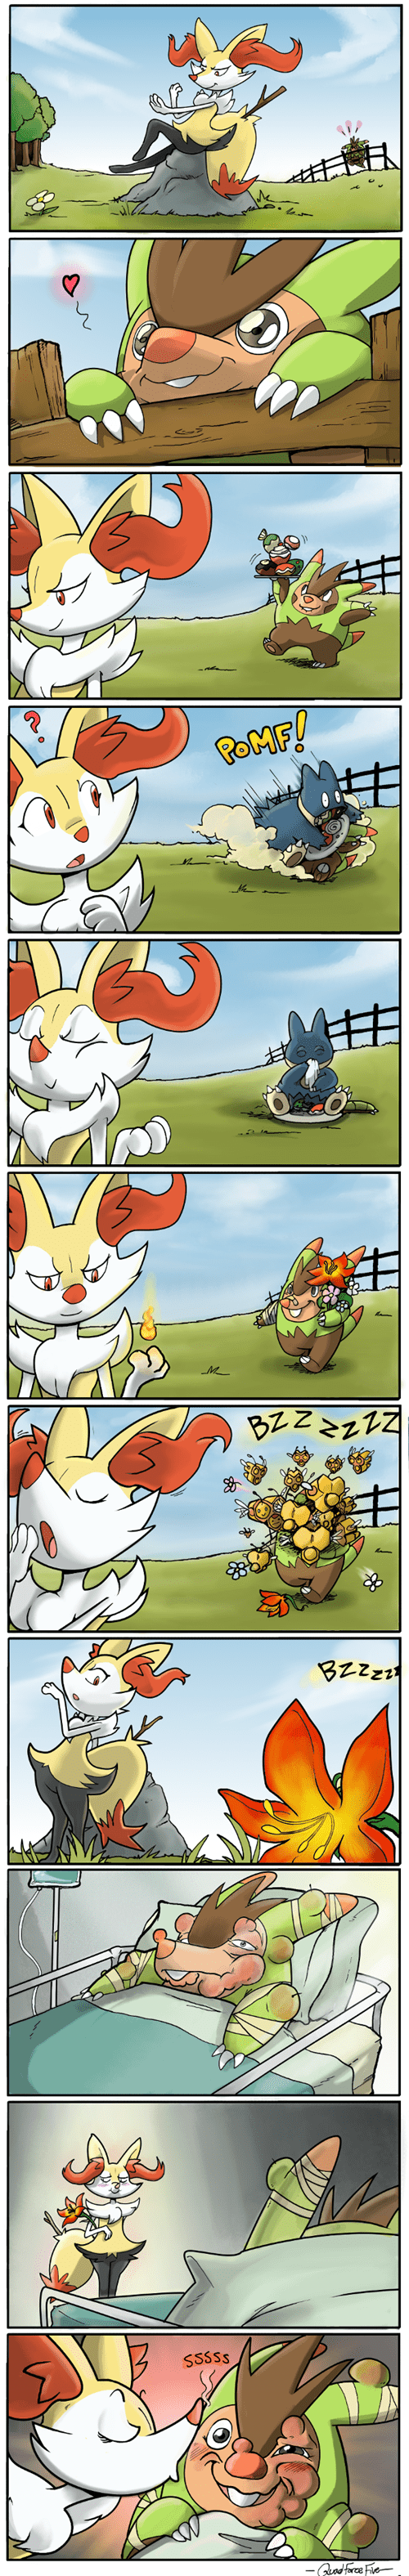 fennekin,Pokémon,Fan Art,web comics